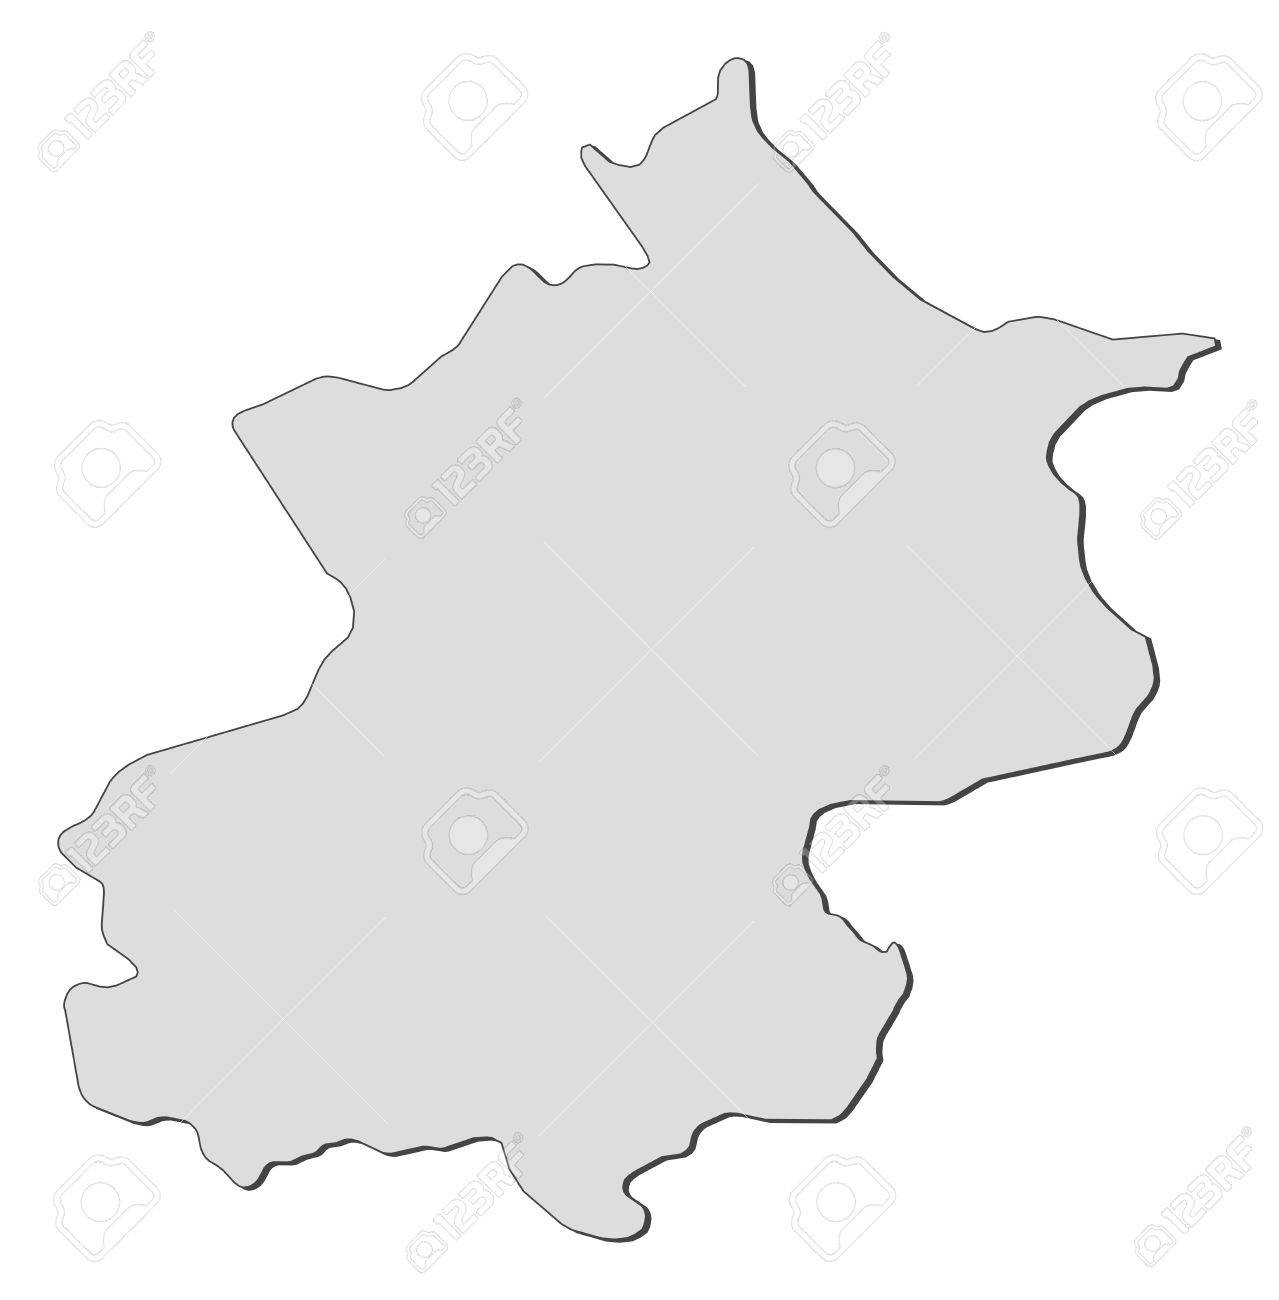 Map of Beijing, a province of China. Stock Vector - 14449980